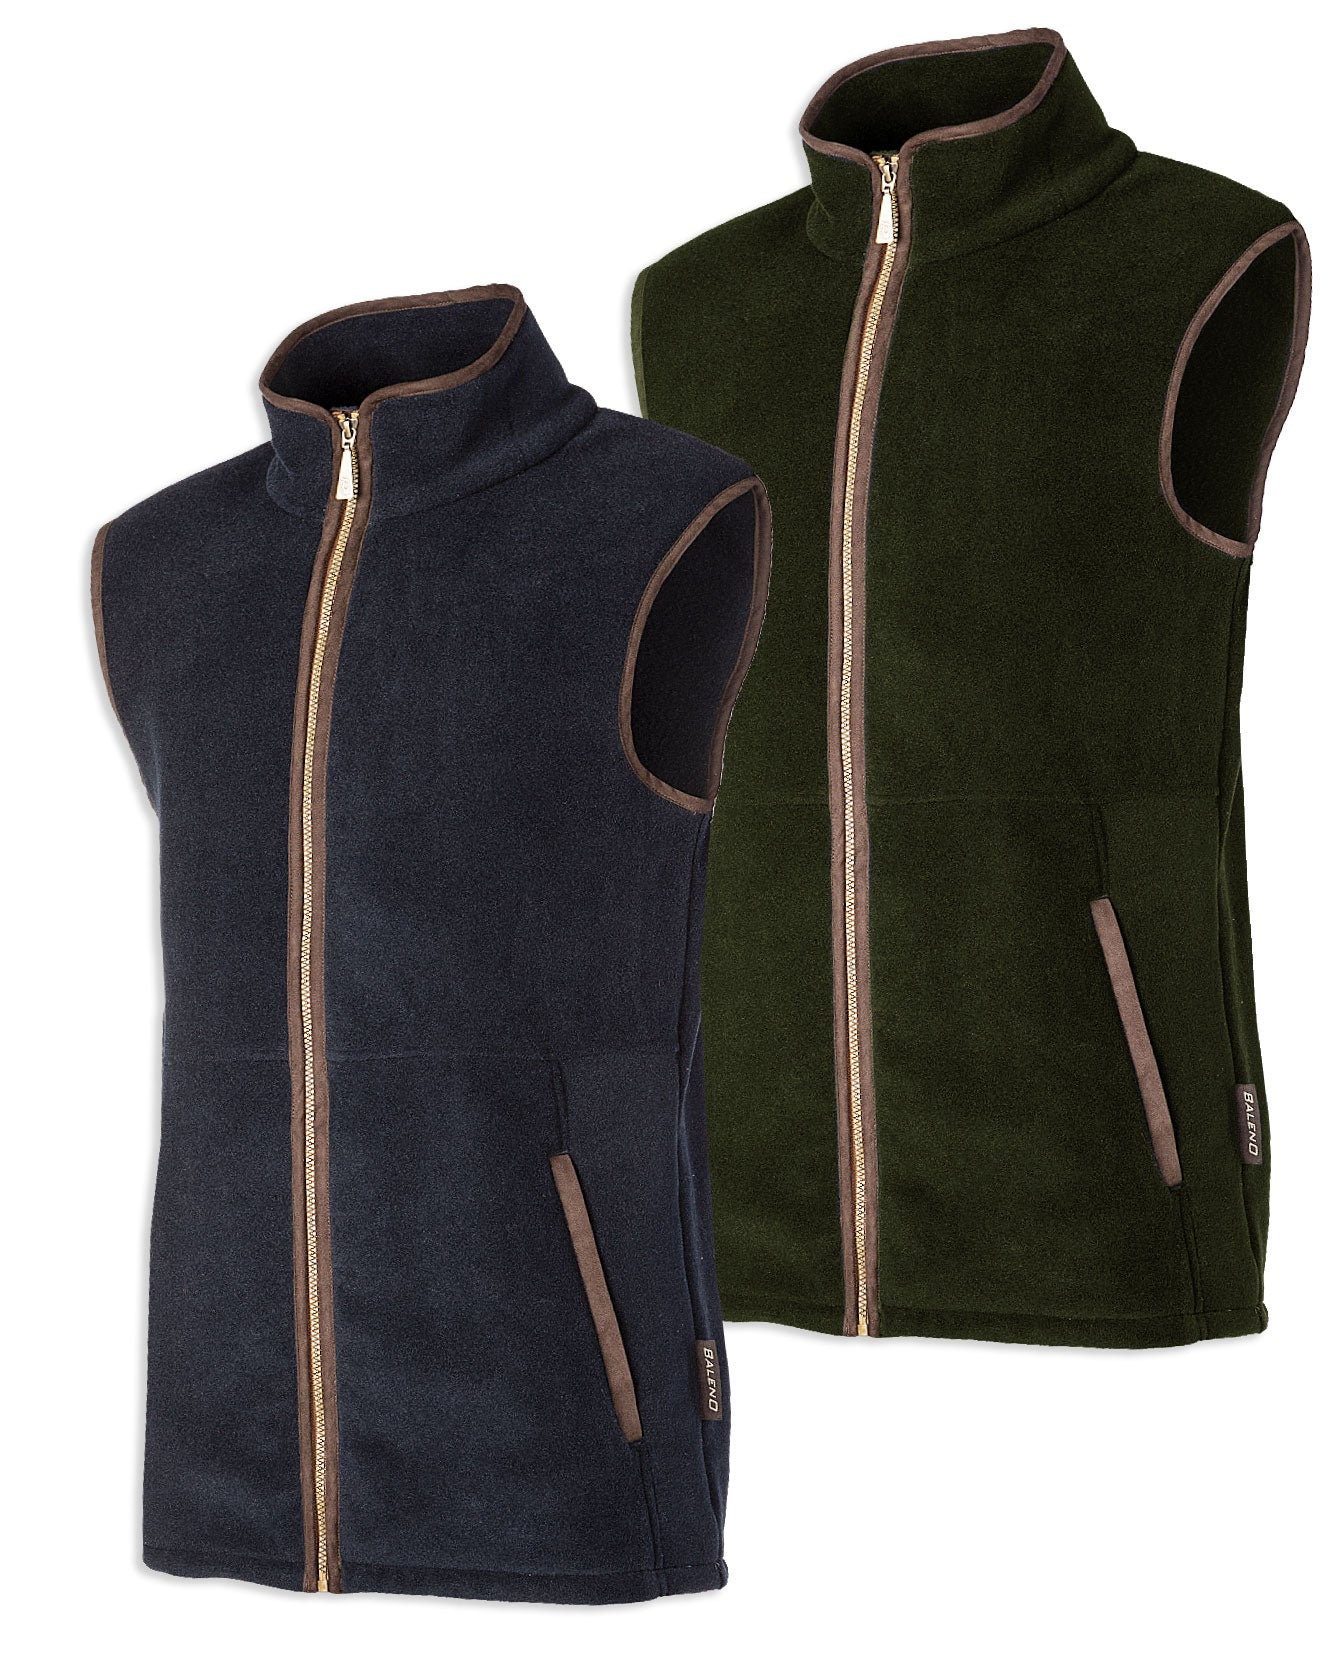 Baleno Highfield Fleece Gilet in Khaki Green and Navy